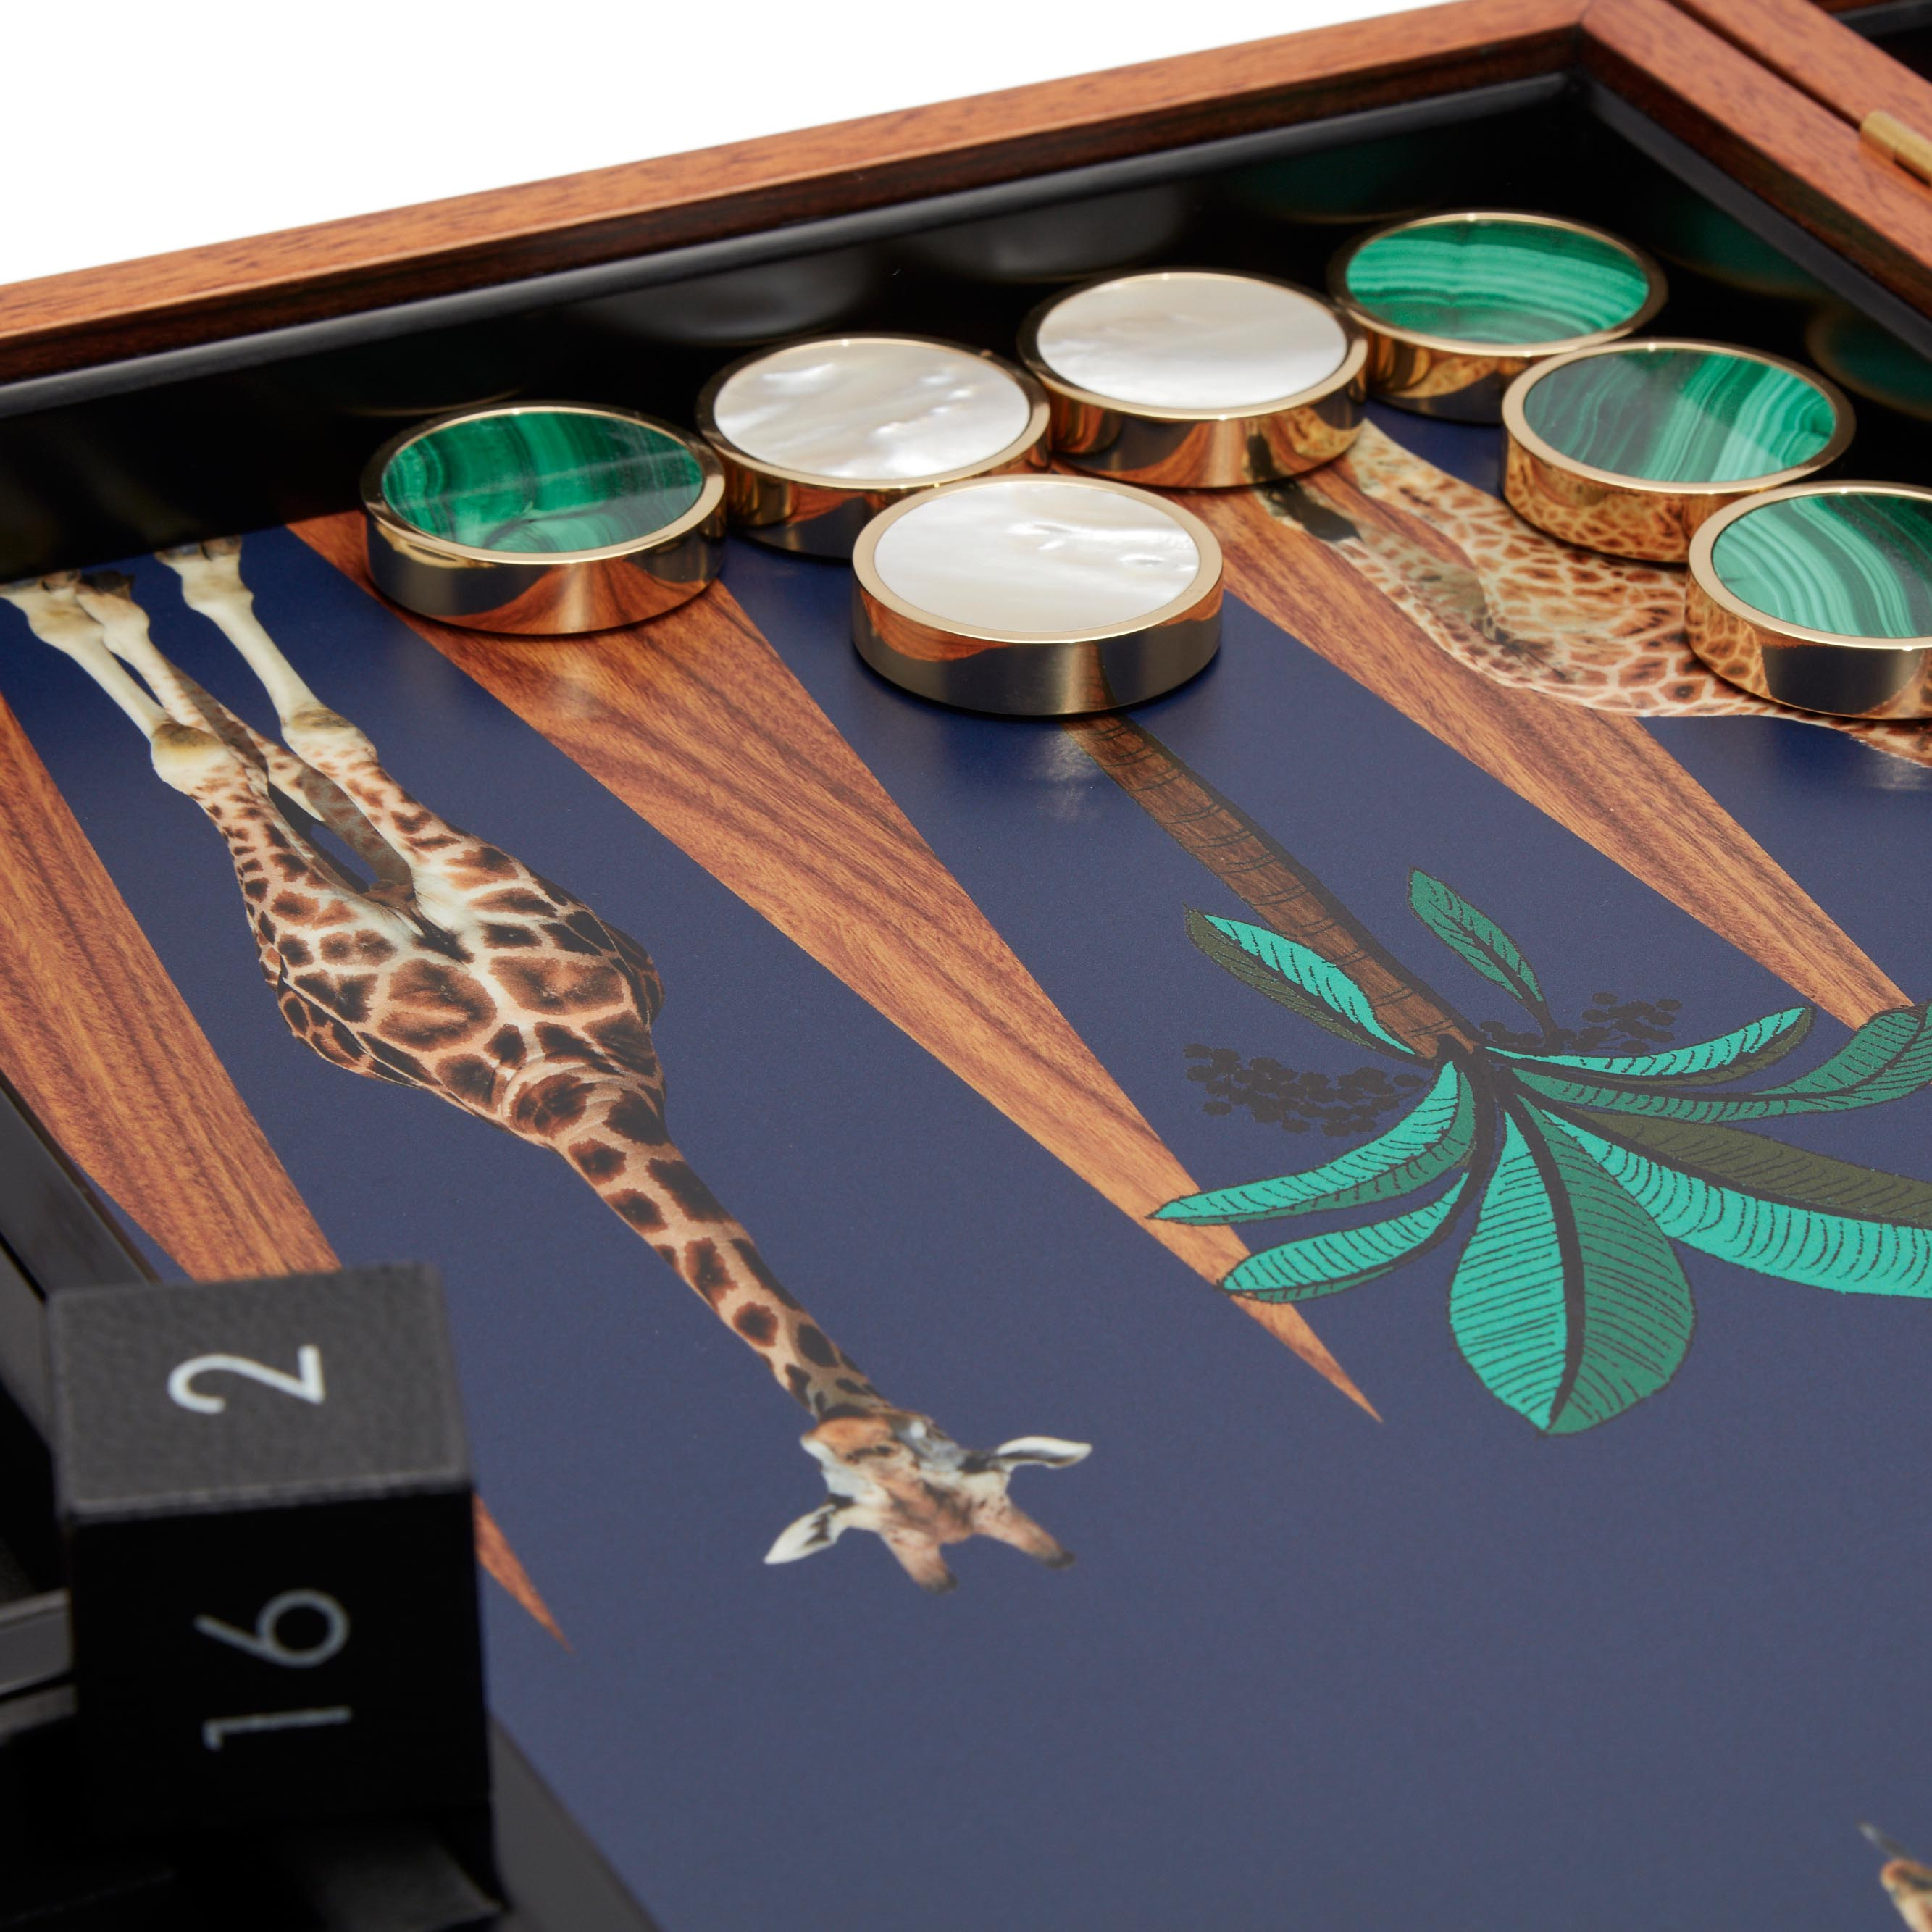 Giraffe backgammon set in a Rose Wood box with Malachite and Mother of Pearl playing pieces